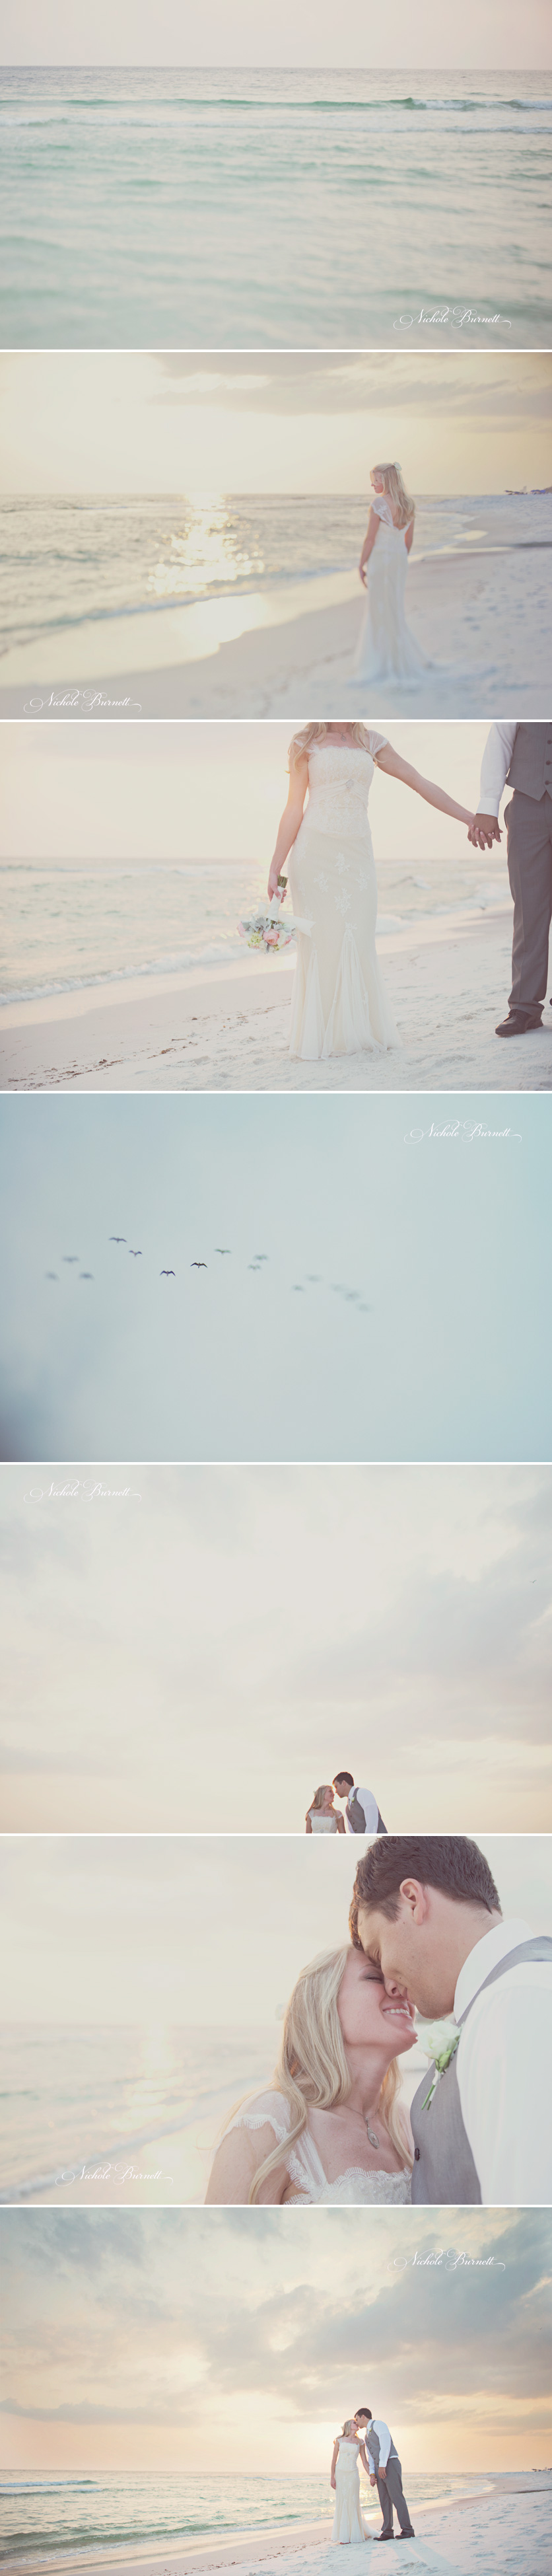 Wedding Photographer Santa Rosa Beach FL